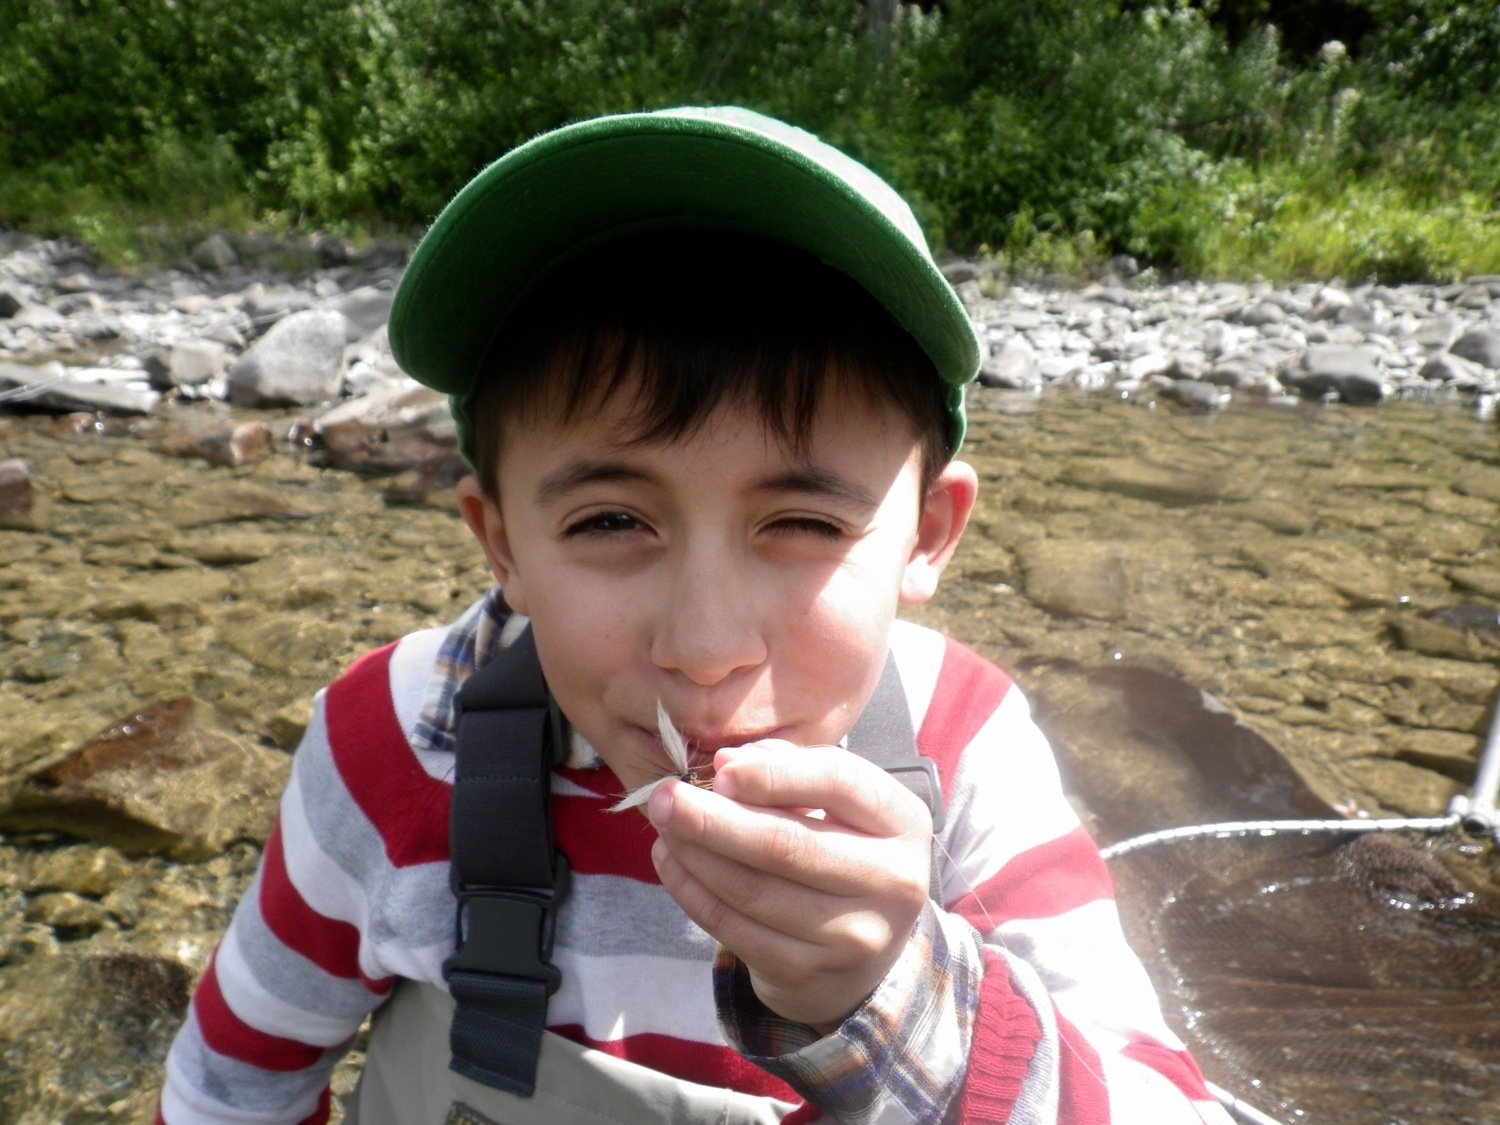 Salmon Fishing Report and With his favourite Fly, a dark brown Bomber, he's keeping this one as a souvenir!